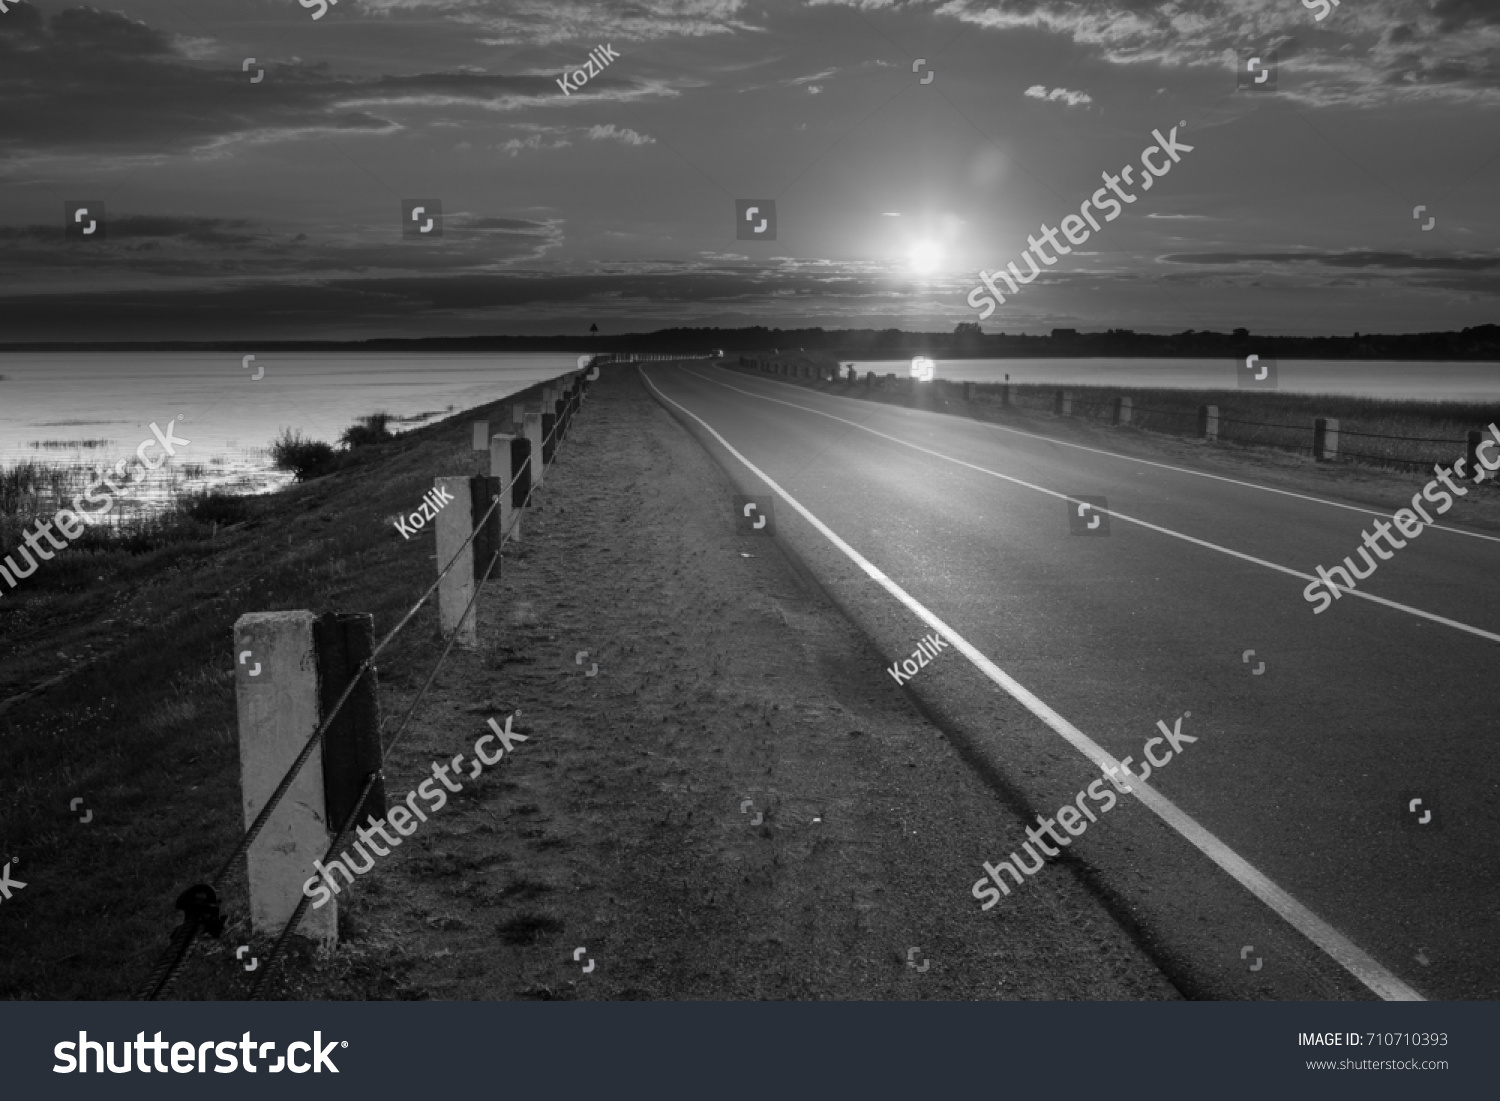 Road with beautiful scenery lake and sky black and white photo